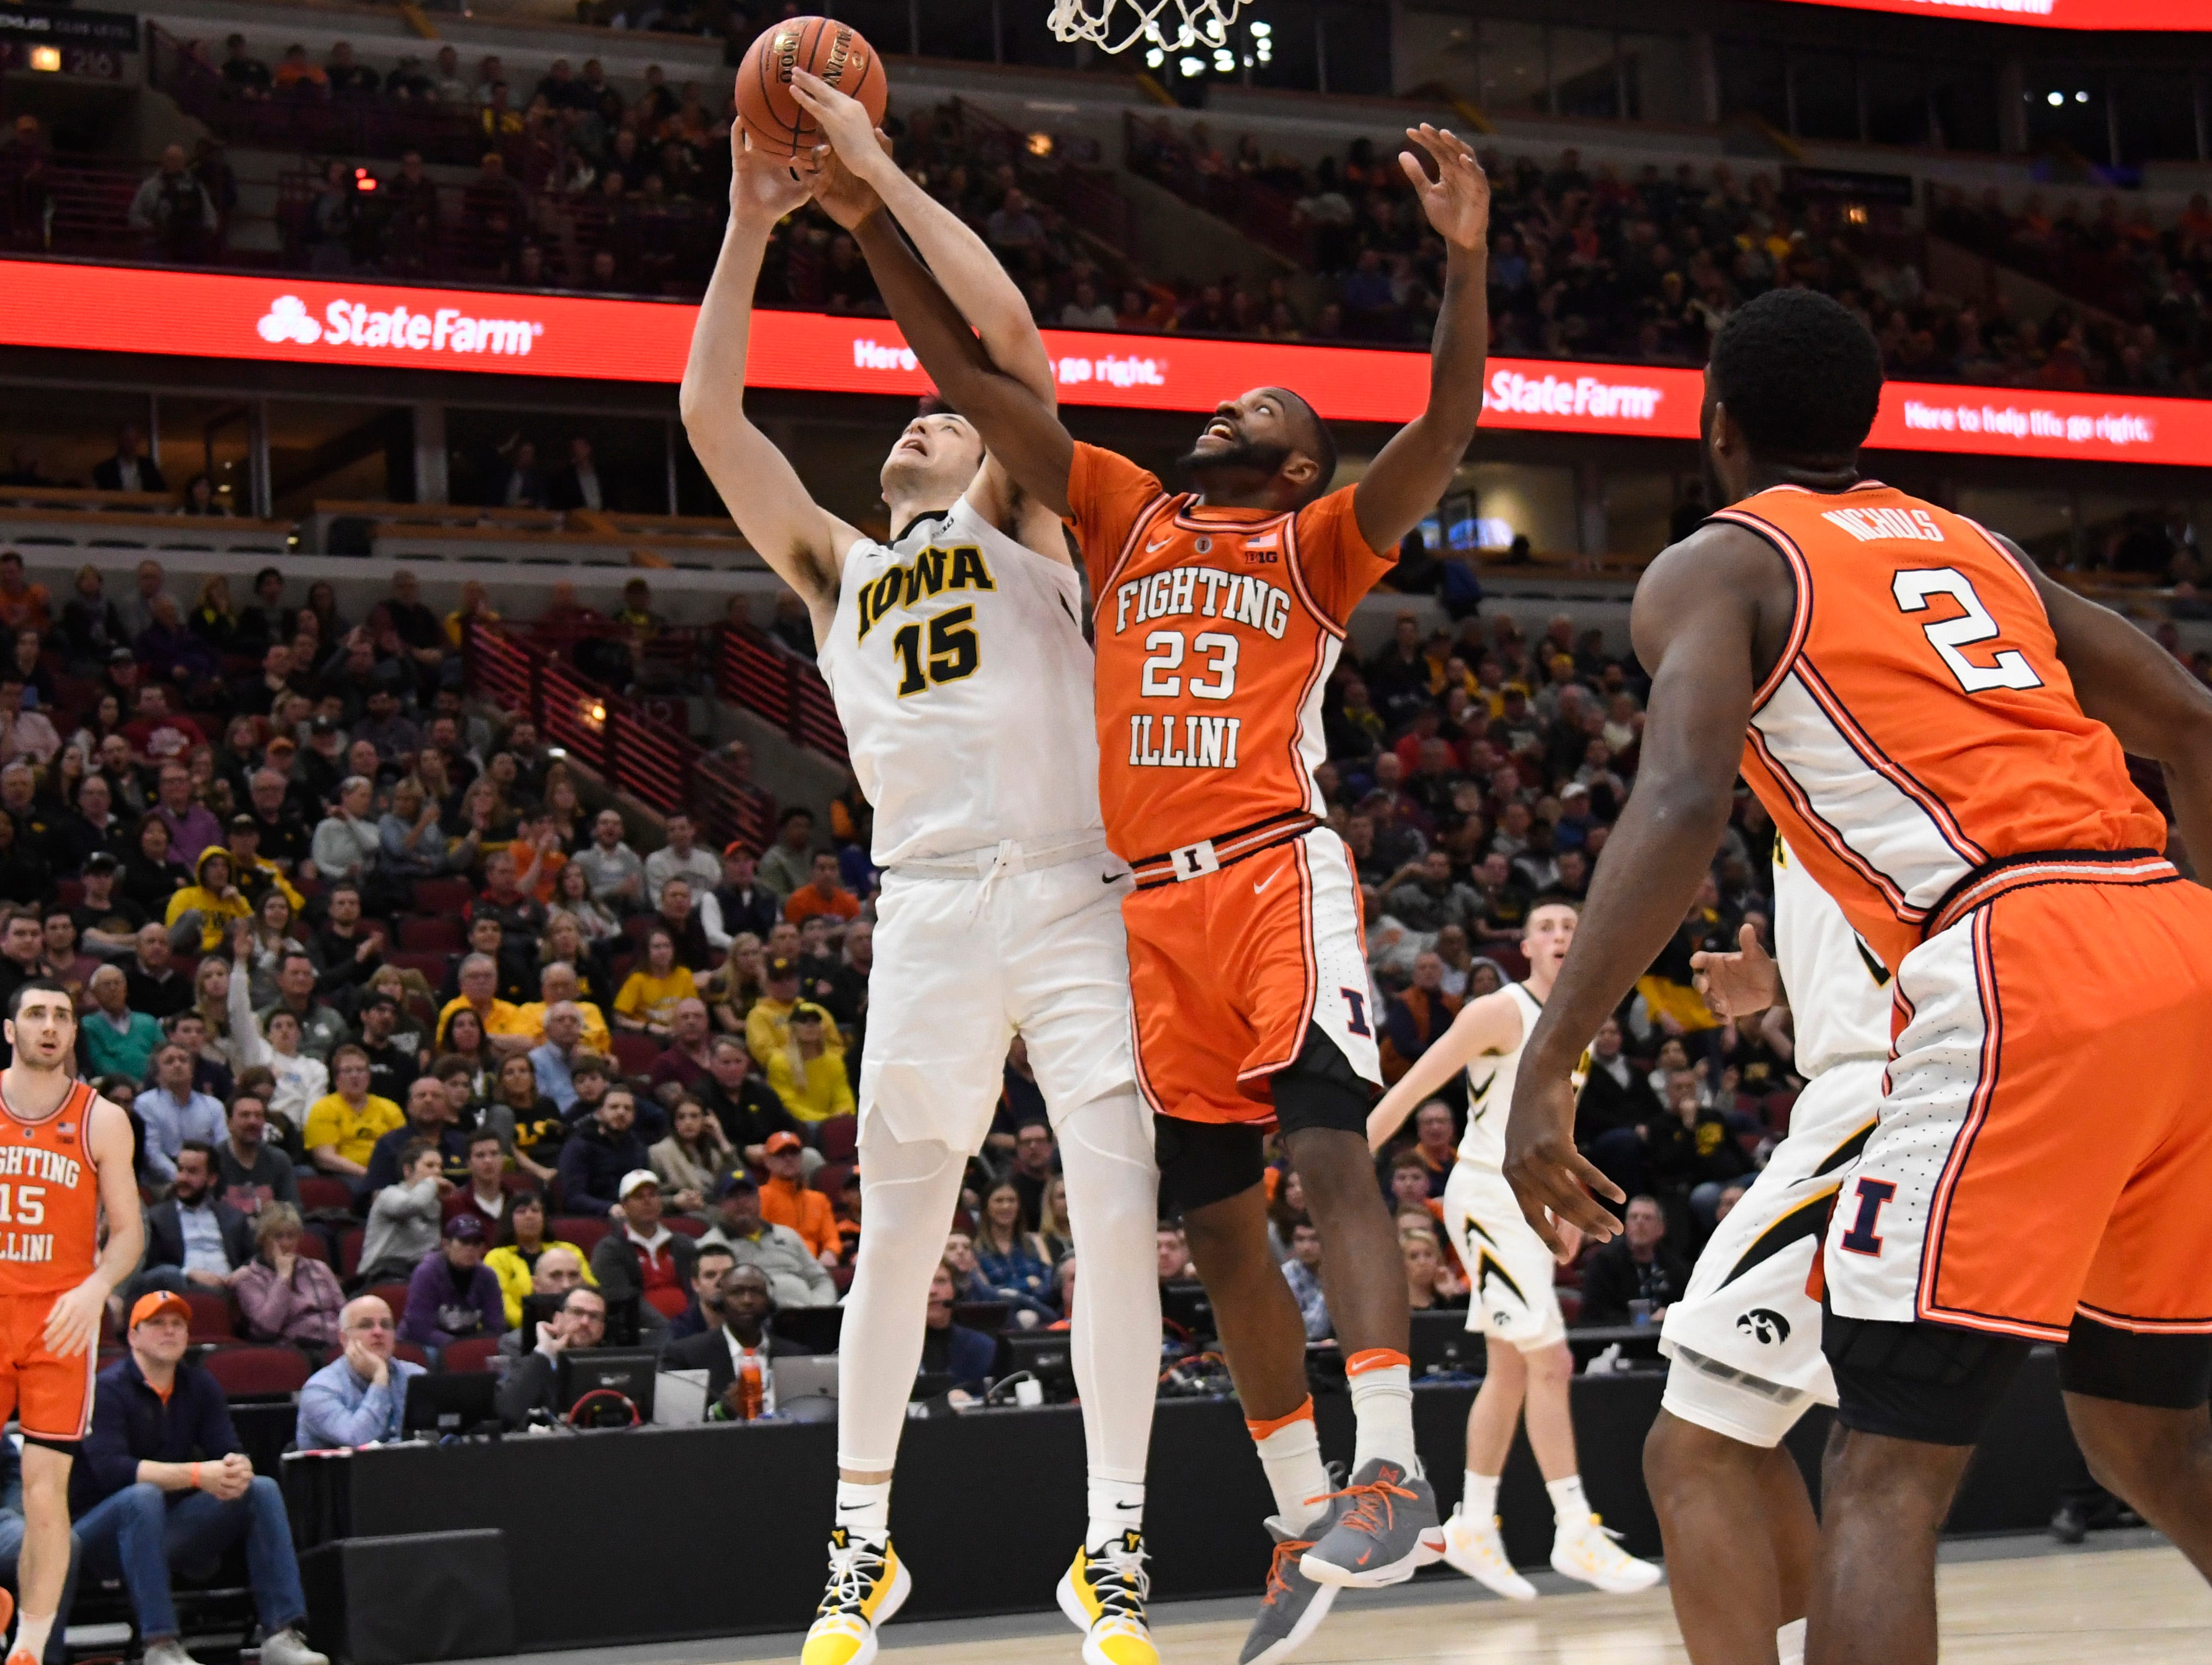 Mar 14, 2019; Chicago, IL, USA; Iowa Hawkeyes forward Ryan Kriener (15) and Illinois Fighting Illini guard Aaron Jordan (23) go for a rebound during the first half in the Big Ten conference tournament at United Center. Mandatory Credit: David Banks-USA TODAY Sports